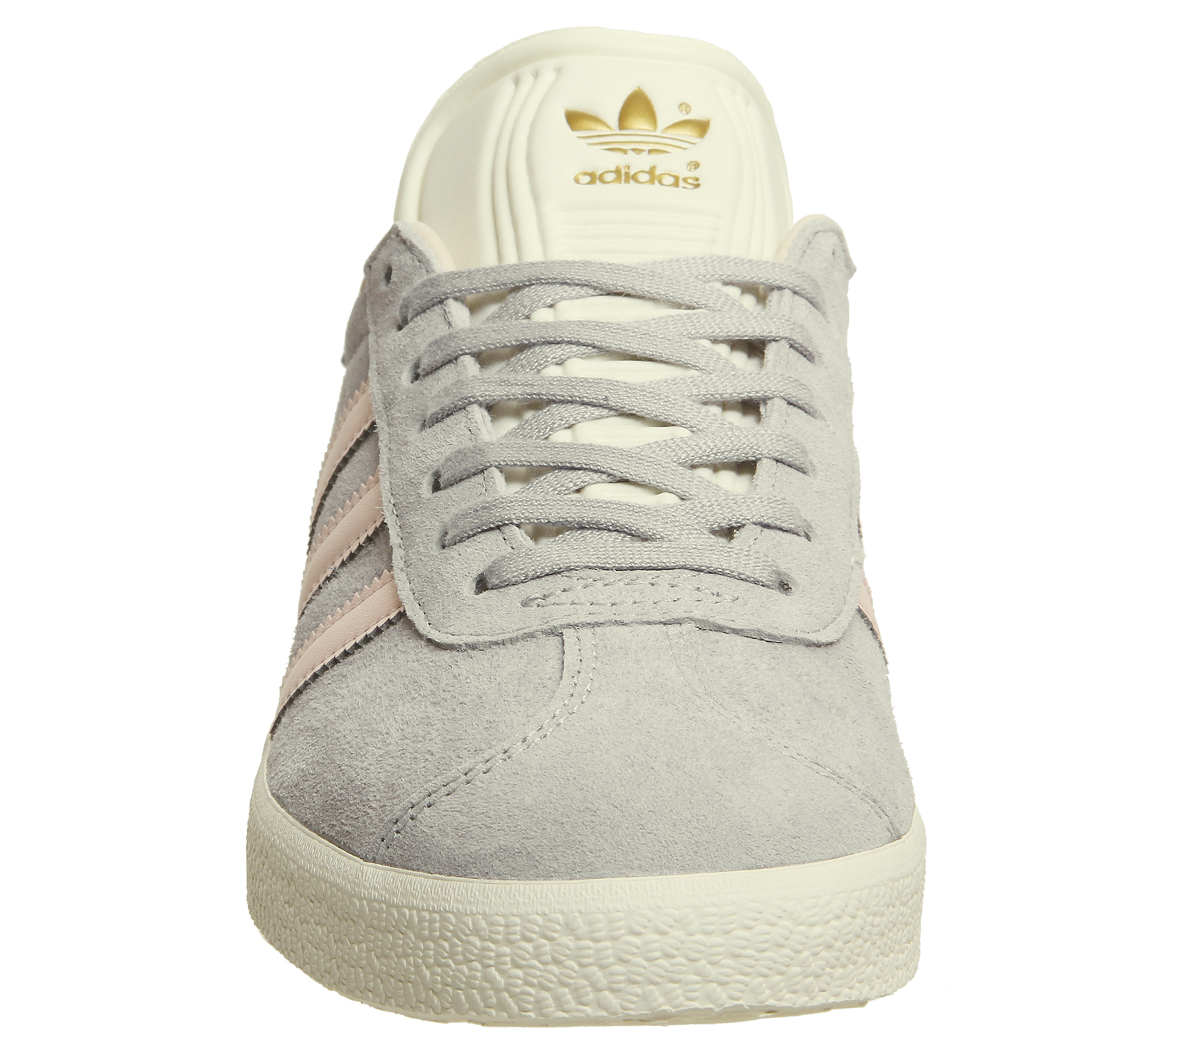 b0b14bc3eef0 Sentinel Womens Adidas Gazelle Trainers Grey Two Icey Pink Cream White  Exclusive Trainers